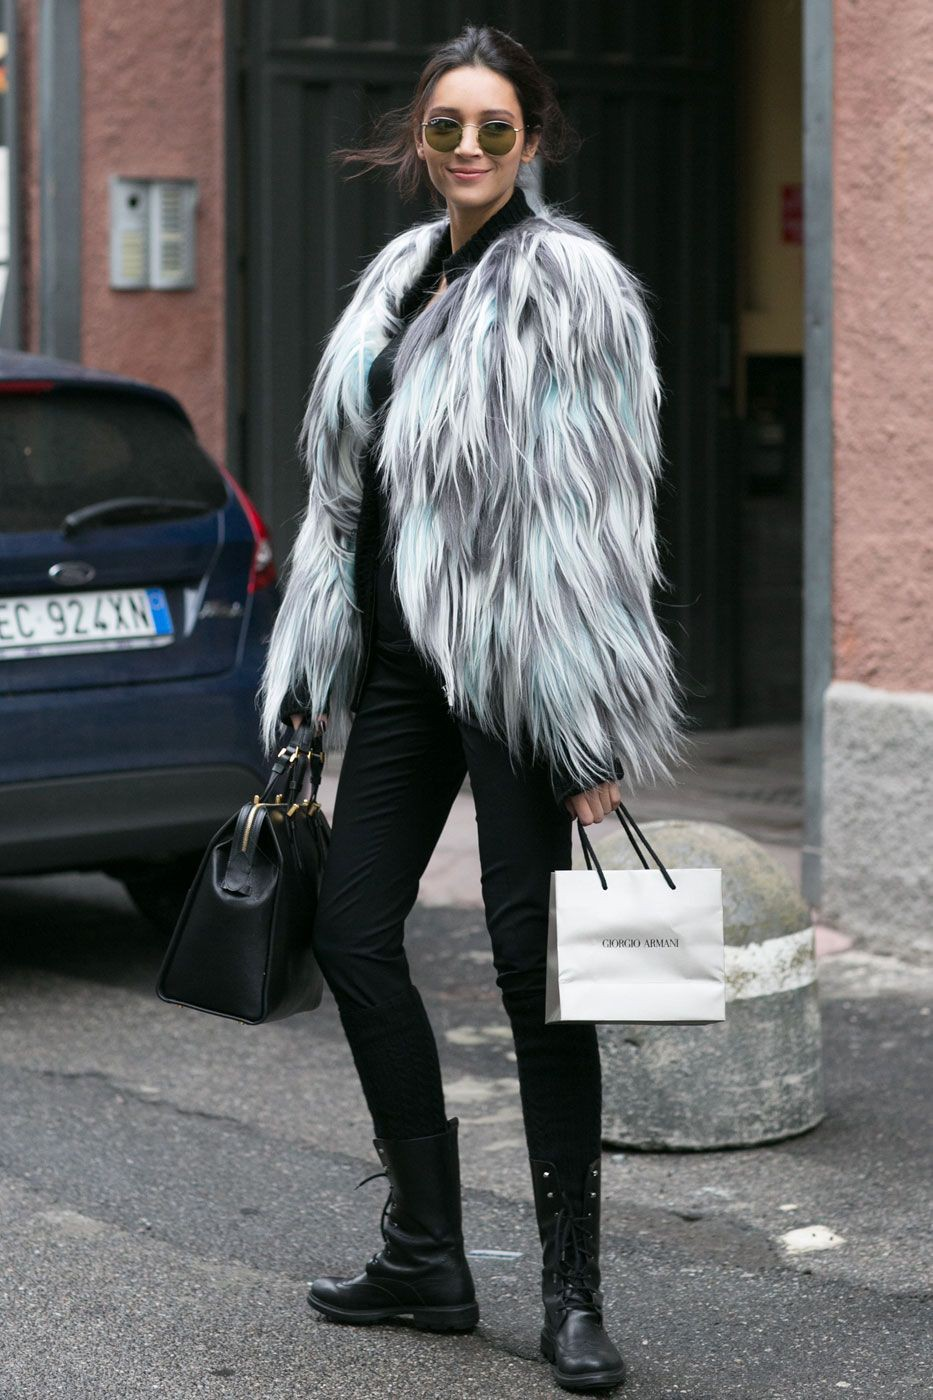 Grey fur jacket outfit, Fur clothing